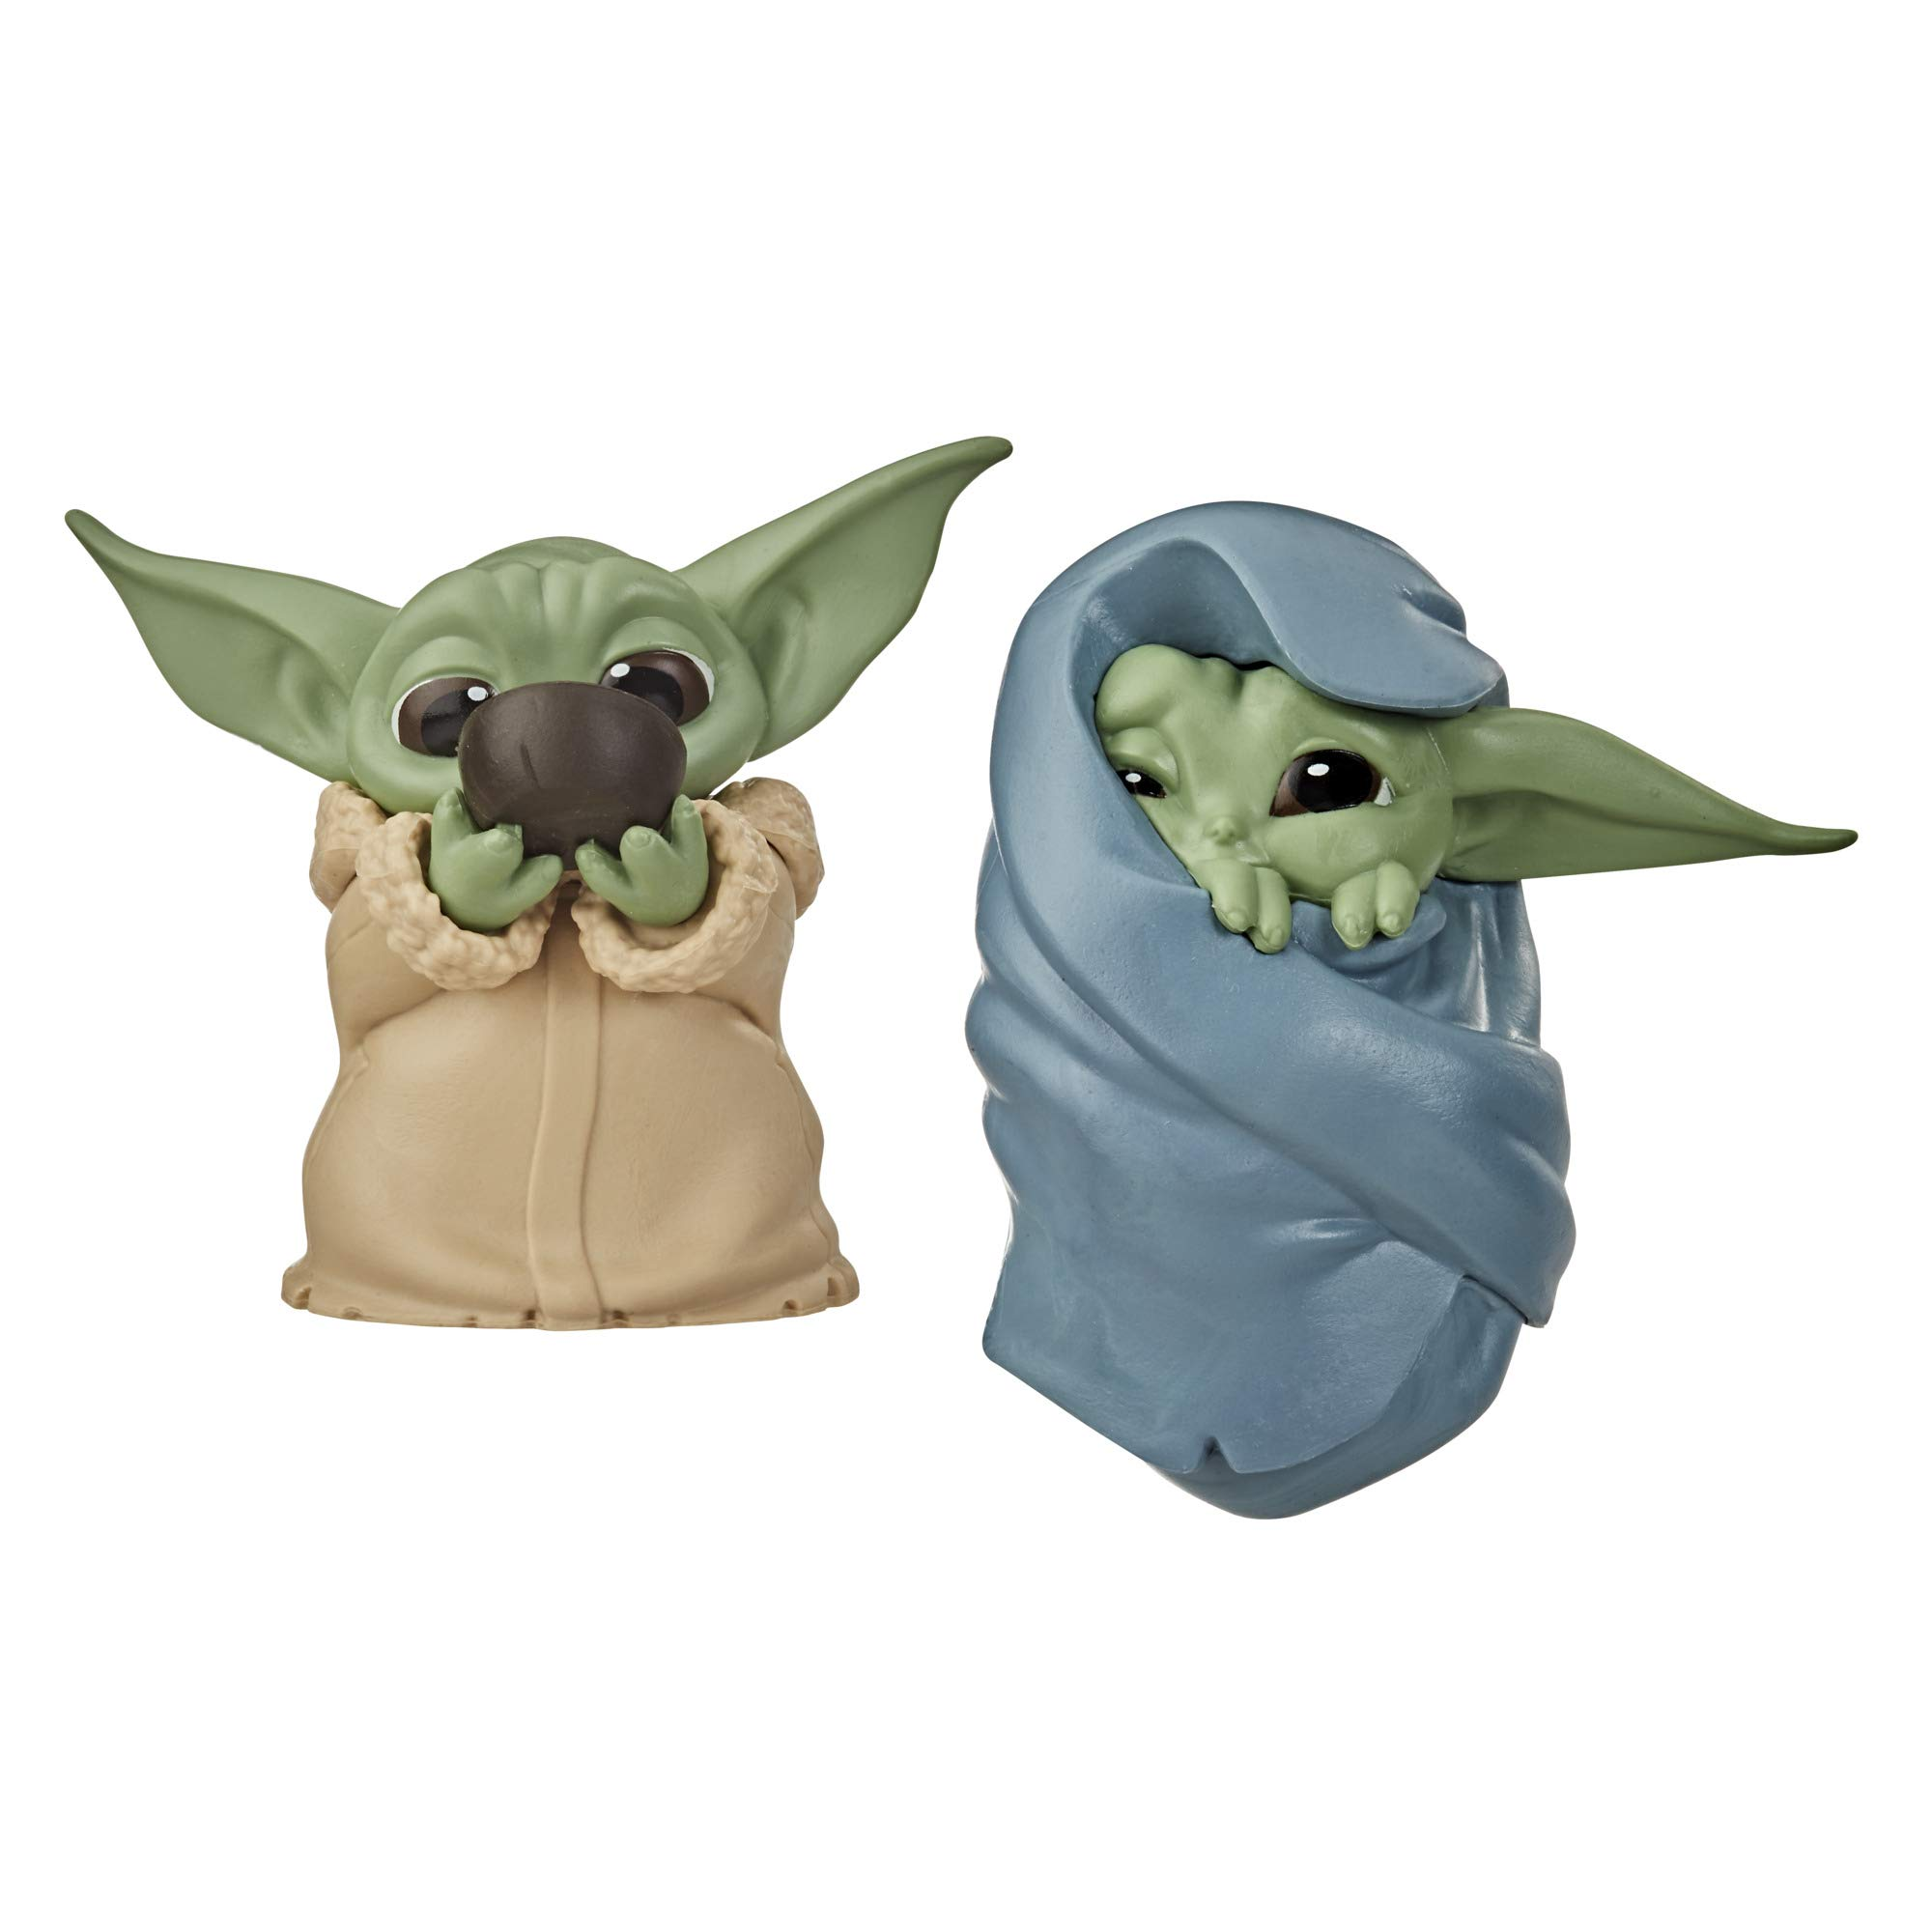 Star Wars- The Child Pack de 2 sopa y manta (Hasbro F12535S00): Amazon.es: Juguetes y juegos